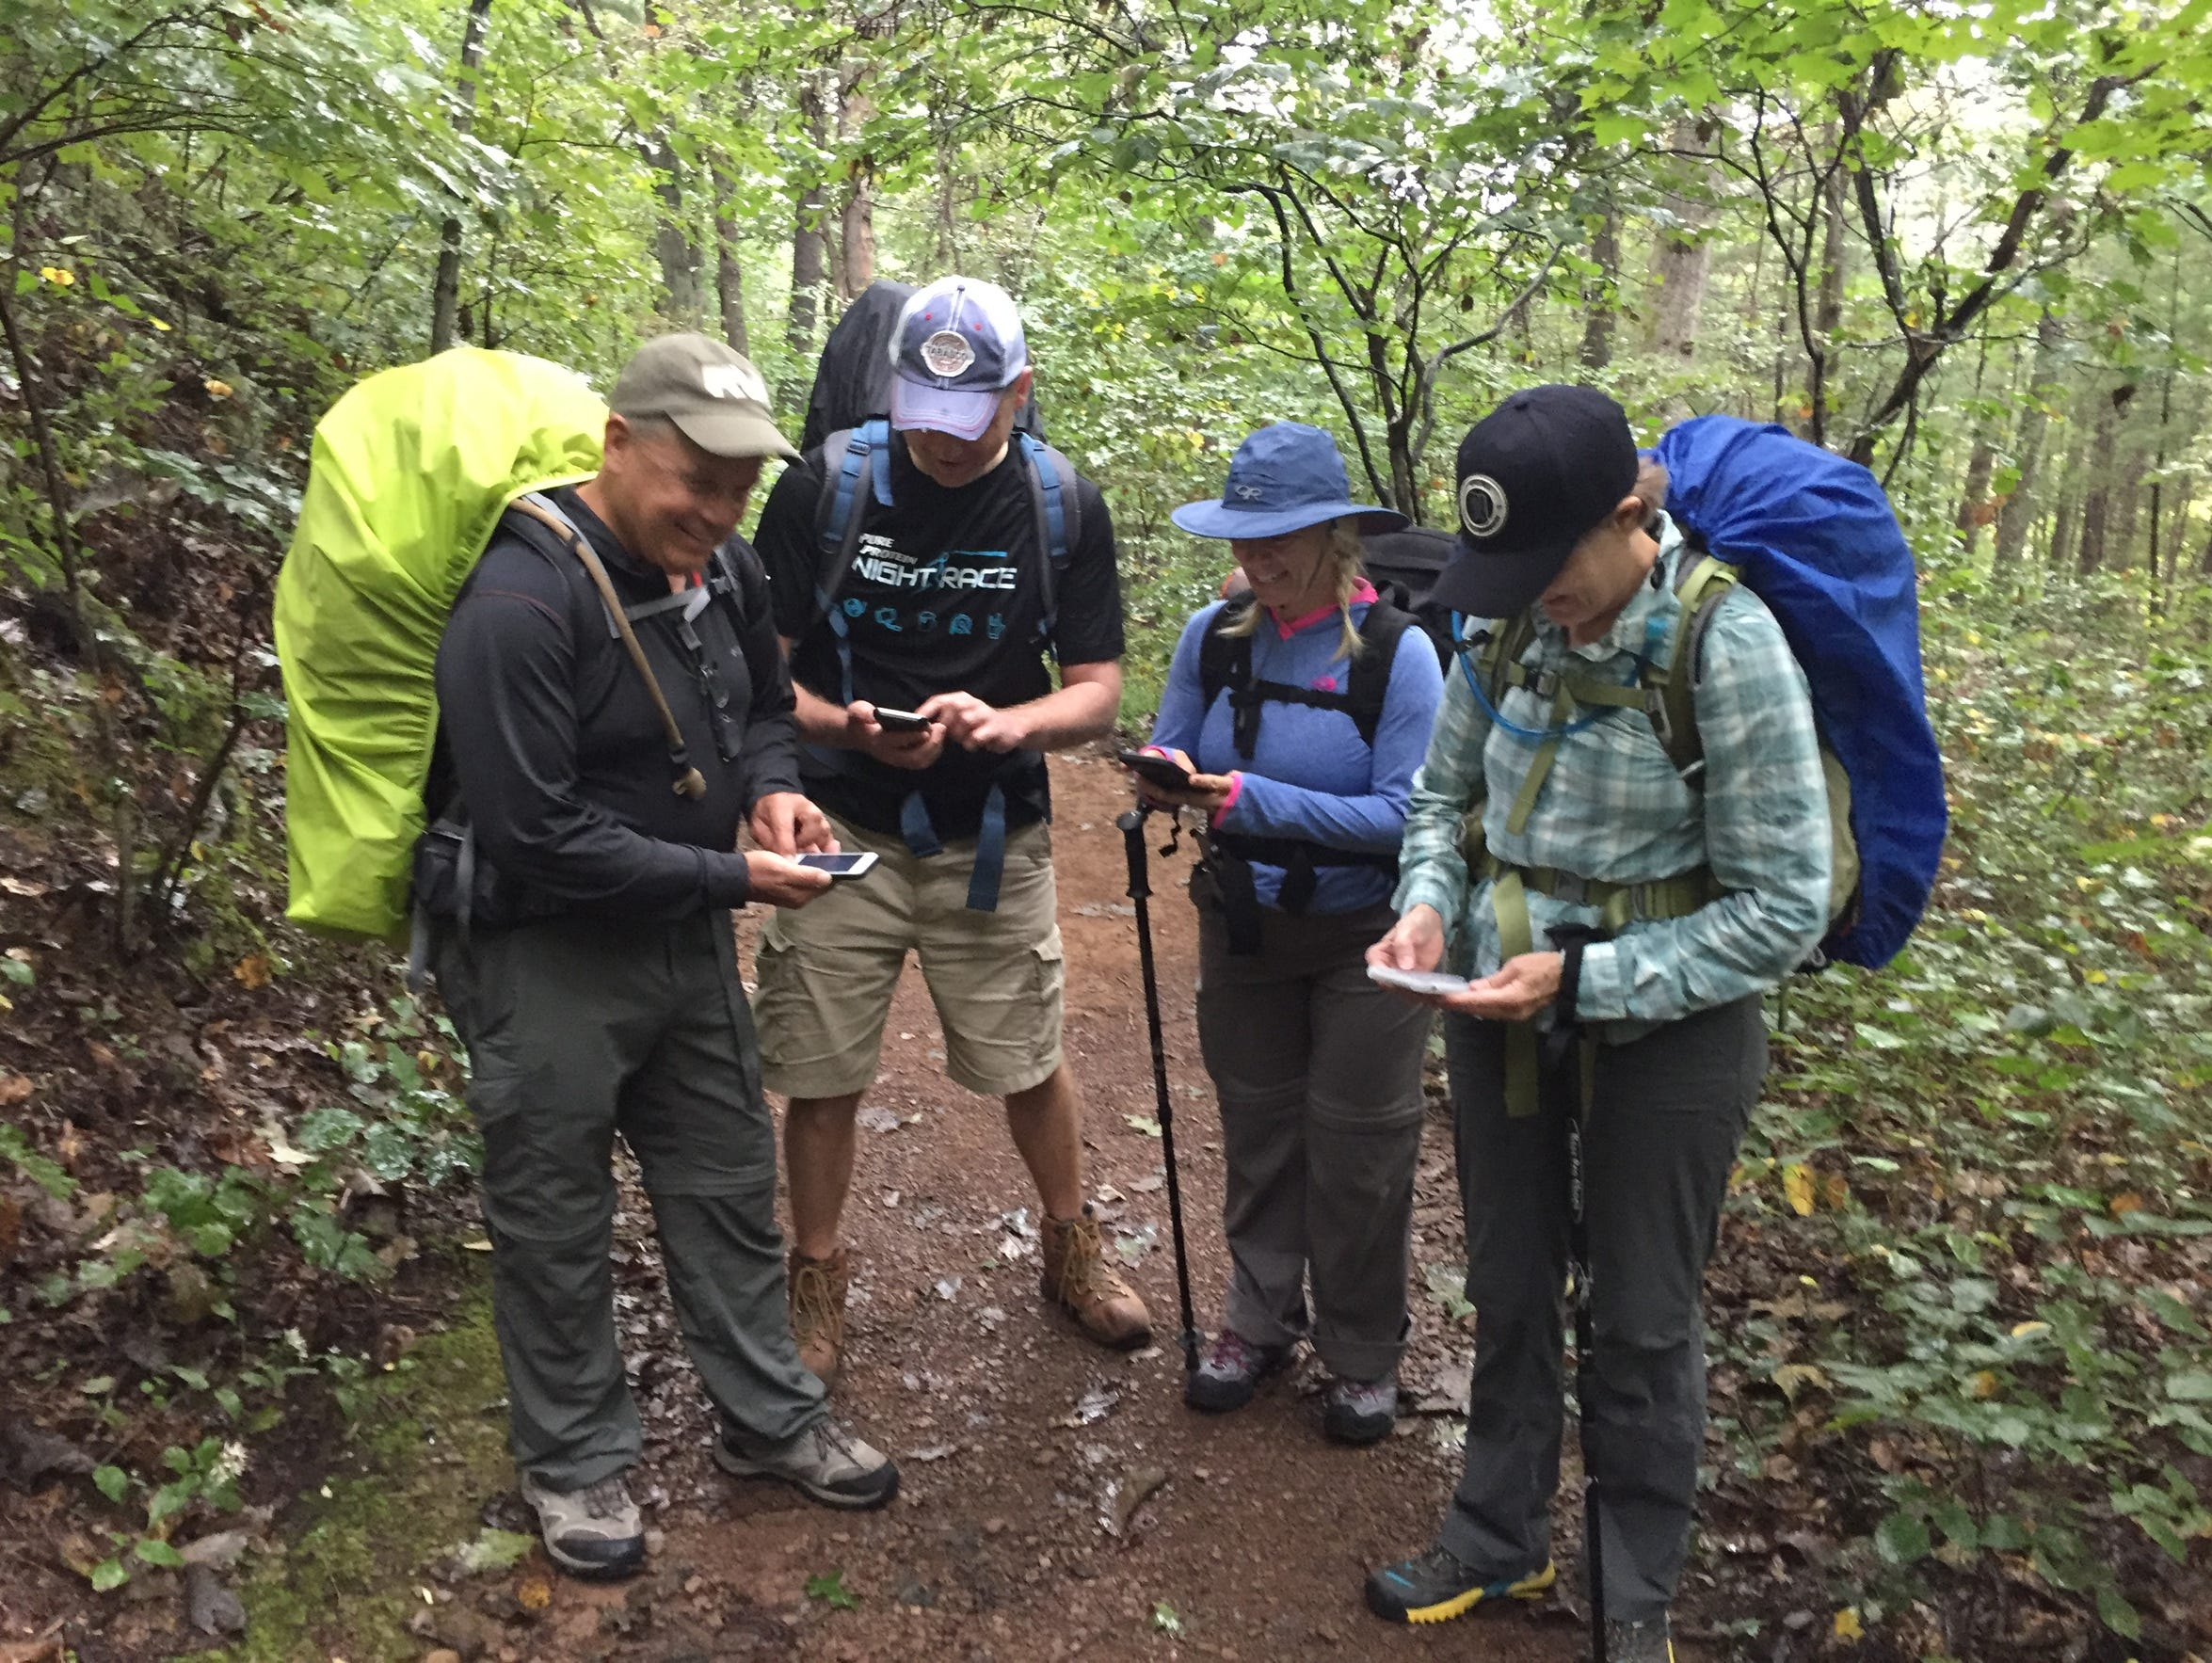 Fellow hikers check their Appalachian Trail apps before